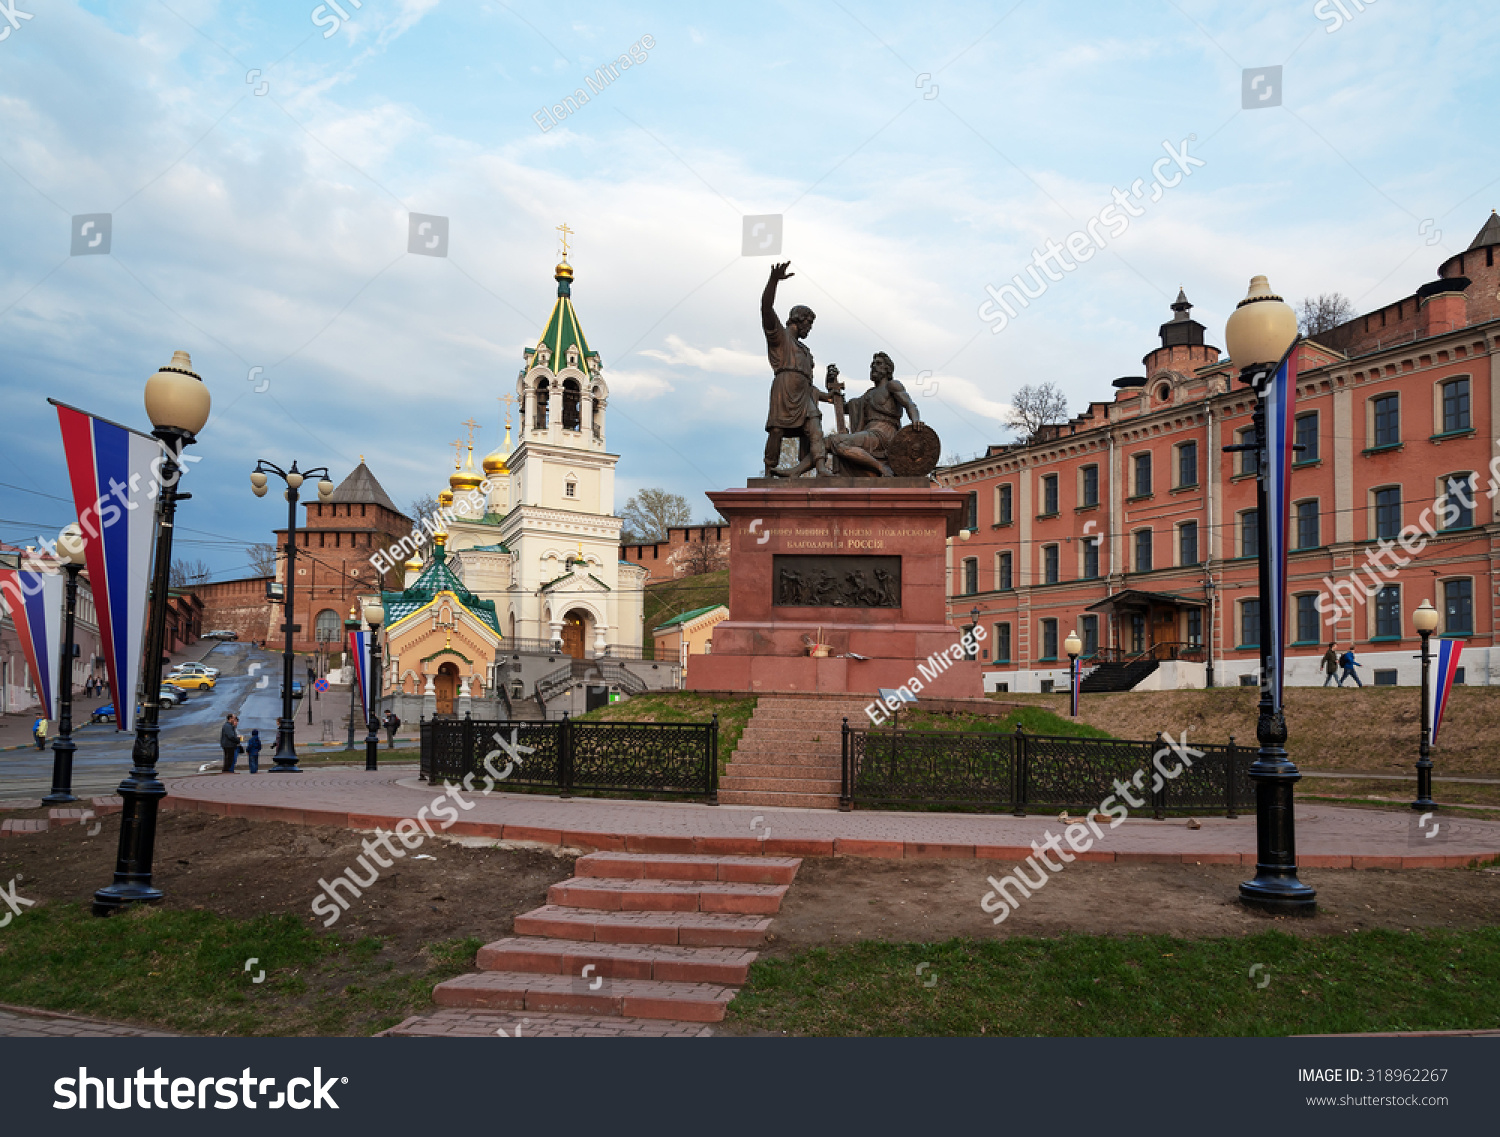 Steps of the city government of Nizhny Novgorod on the preparation of highways for the 2018 World Cup 17